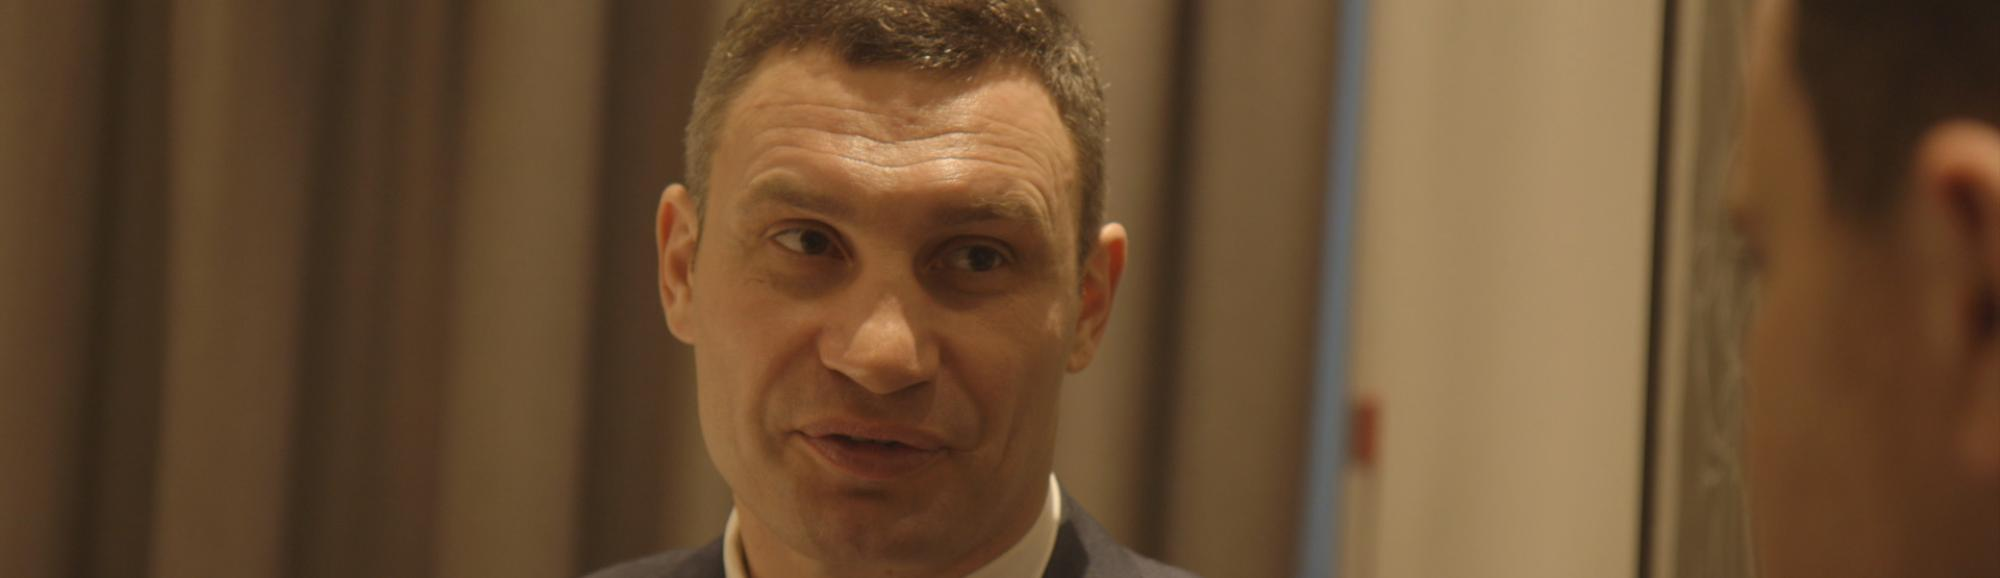 Kiev's Heavyweight Boxing Champ Mayor Wants to Knock Out Corruption in Ukraine